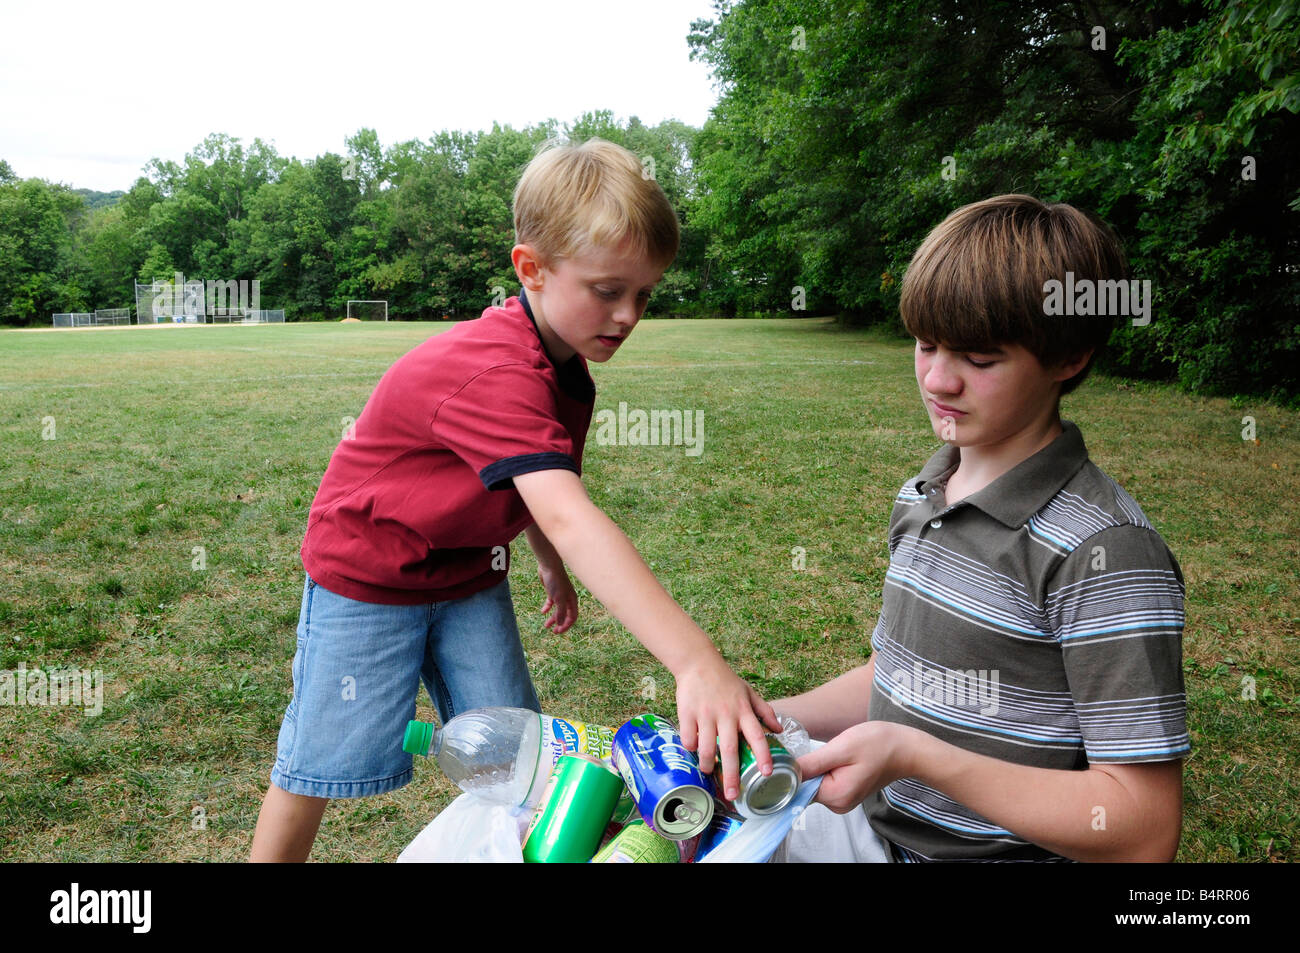 Two boys picking up recyclable litter in a field or park Stock Photo